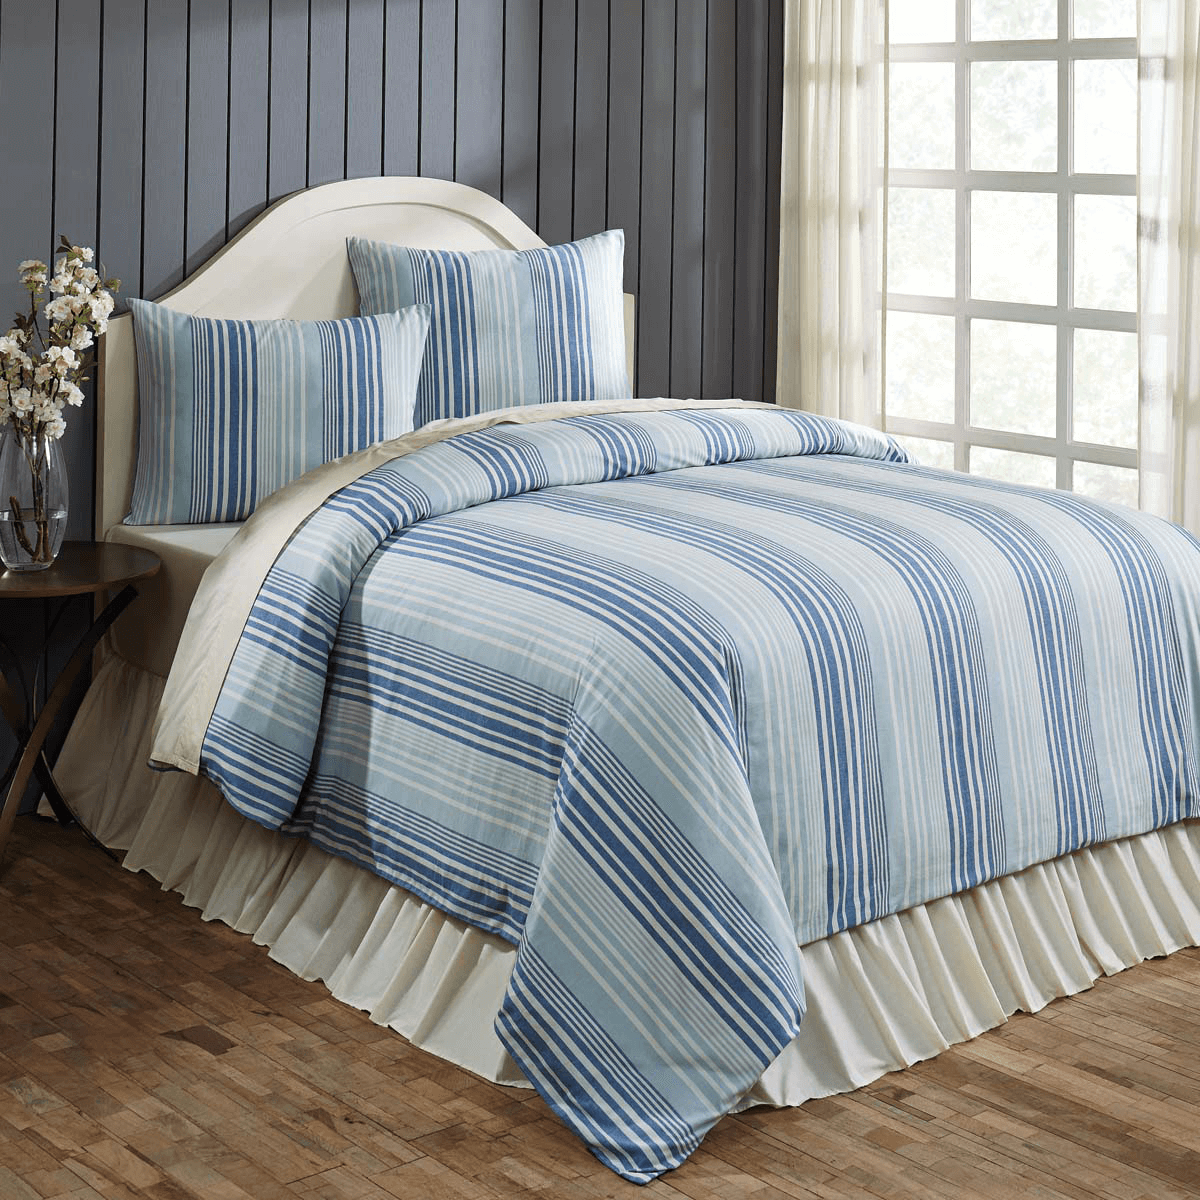 Lake Coast Blue Stripe King Duvet Cover Set Teton